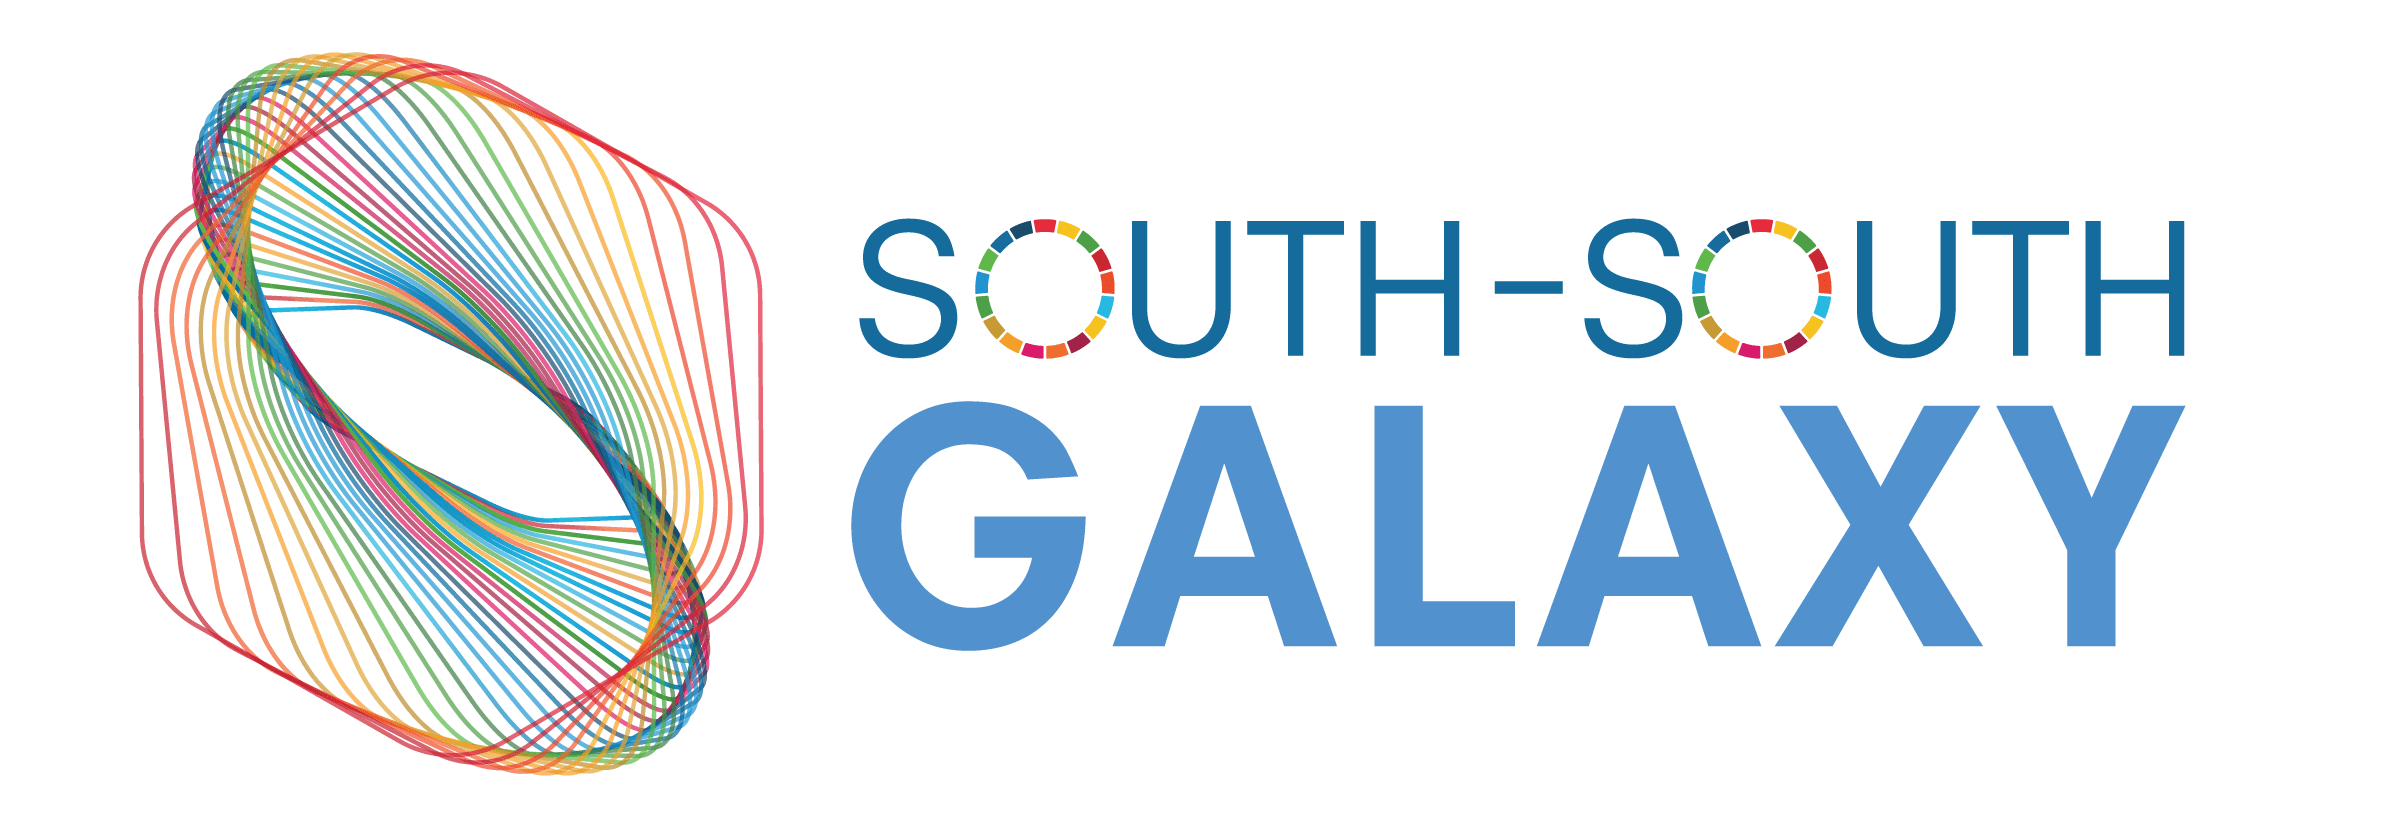 Galaxy South-South Logo